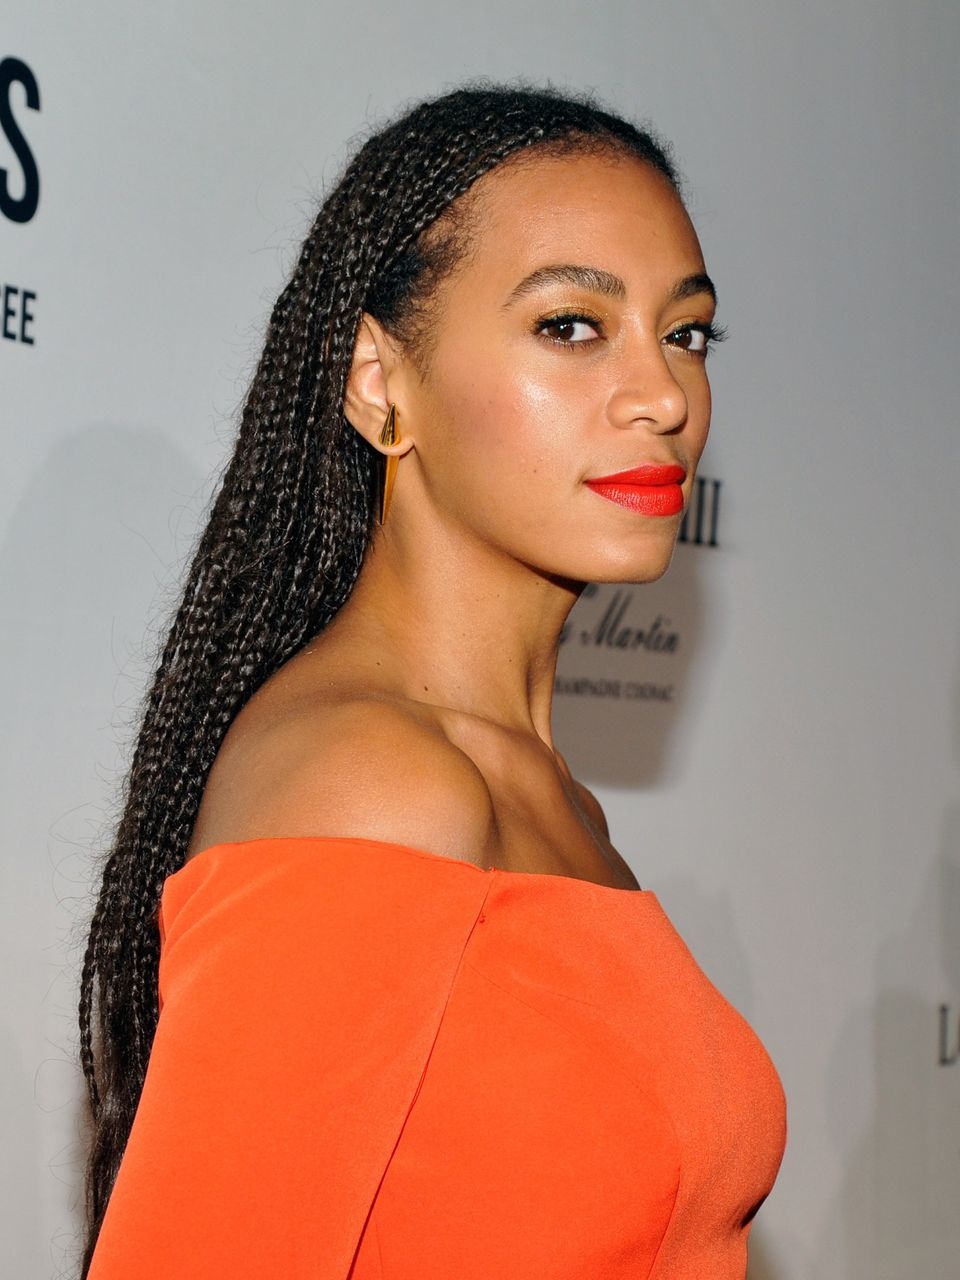 41 Solange Knowles Hairstyles You Ll Want To Copy Right Now Huffpost Life